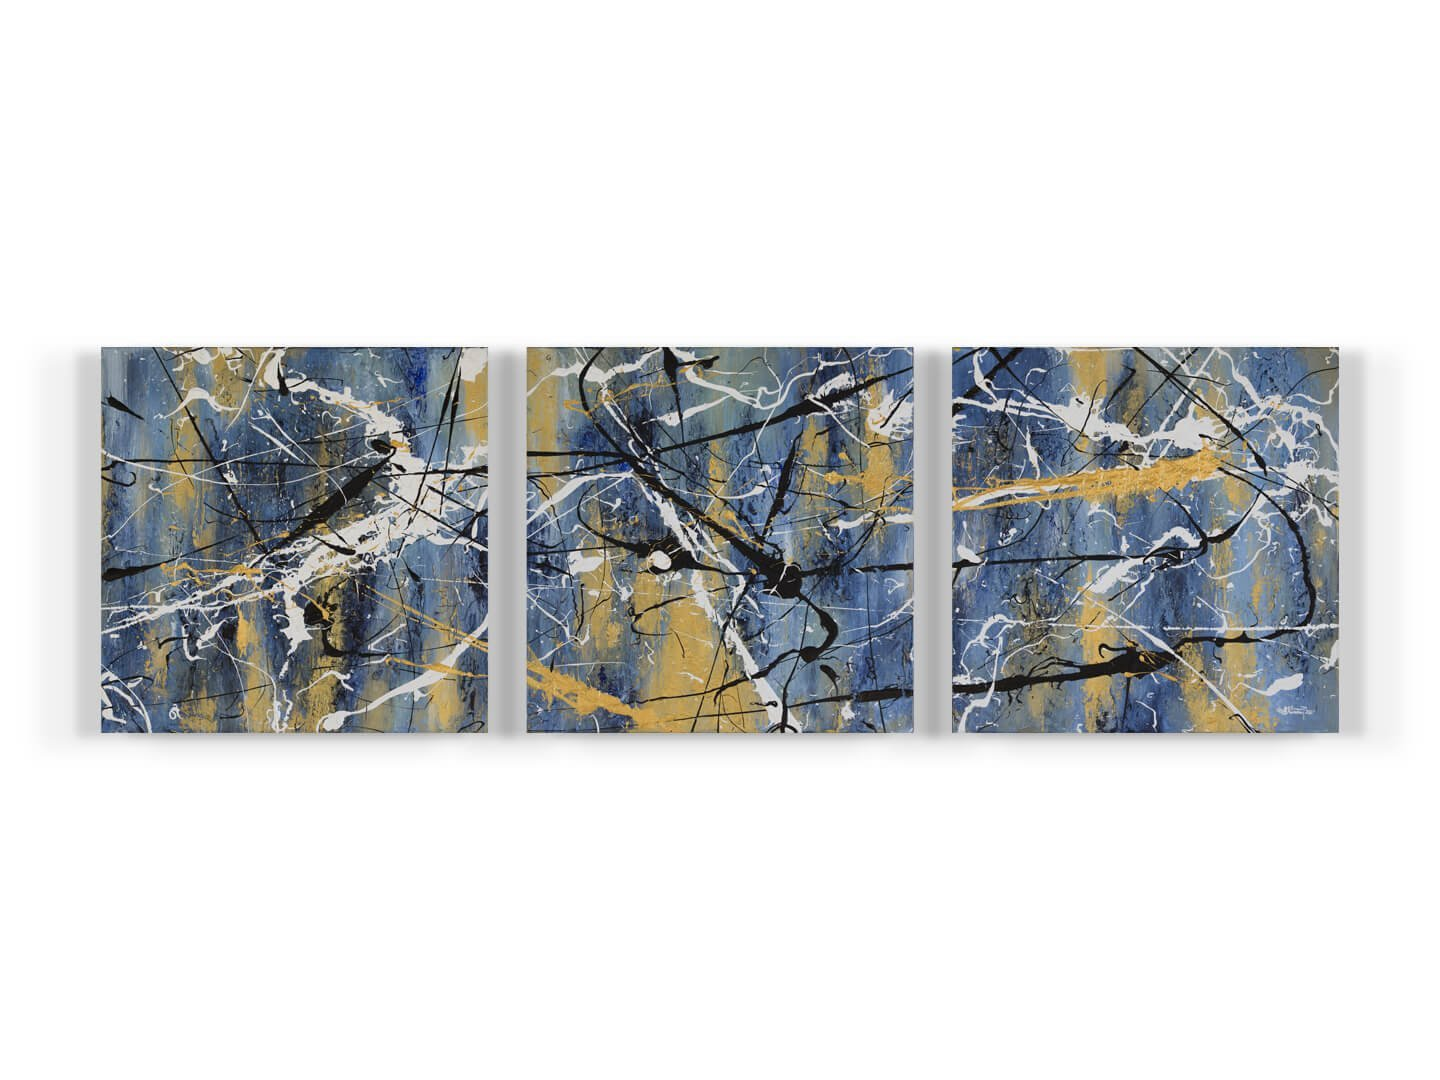 BLUE ZONE Tryptic 3x 40x40 Mixed media on canvas 2019 - gold - white - black